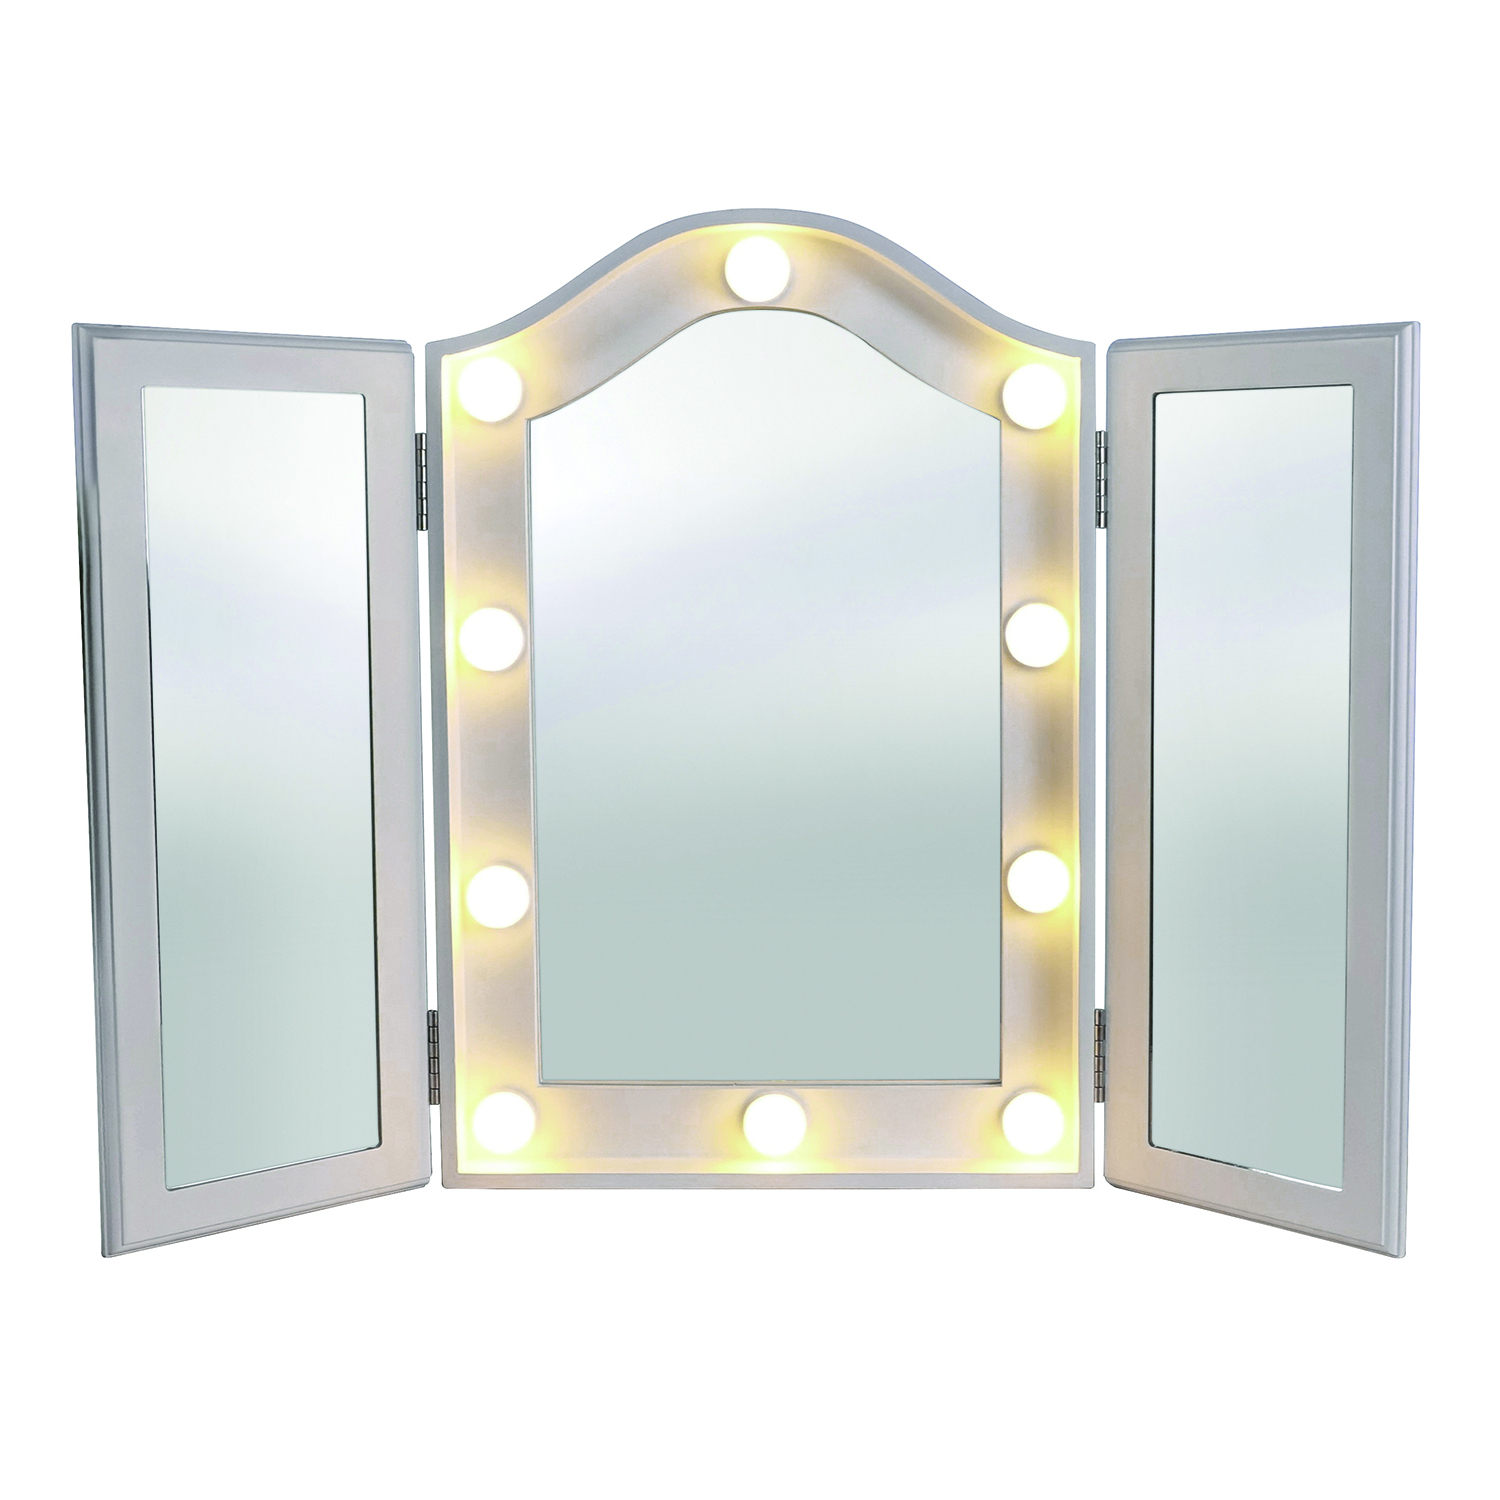 Princess Led Vanity Trifold Mirror 079850 Regarding Most Current Tri Fold Wall Mirrors (View 11 of 20)